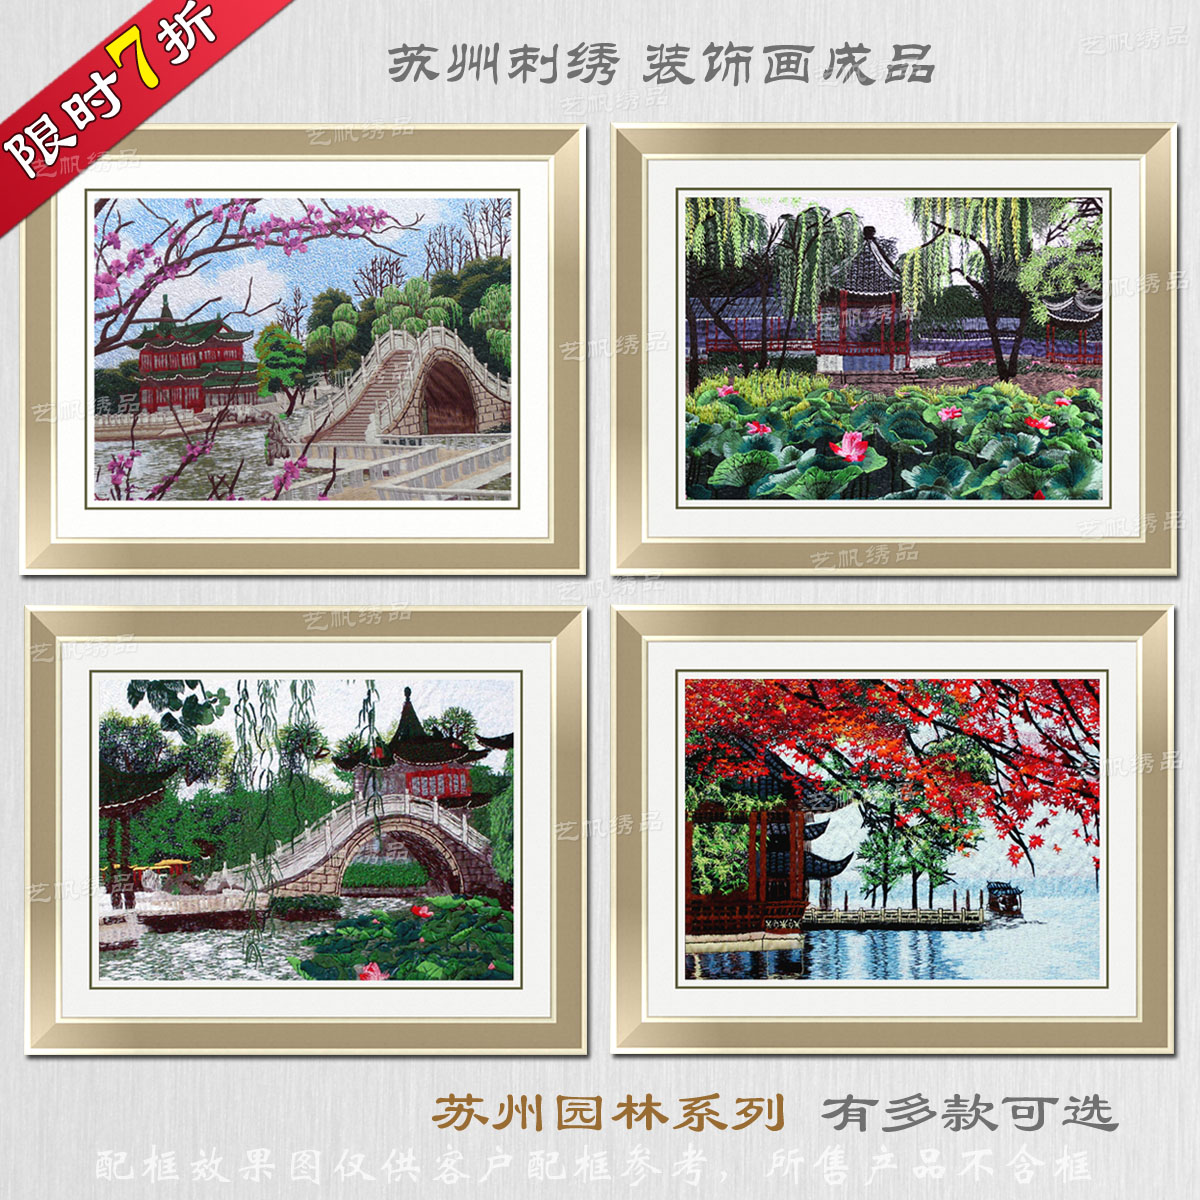 Suzhou embroidery finished product decorative painting embroidery series handmade random stitch embroidery painting(China (Mainland))